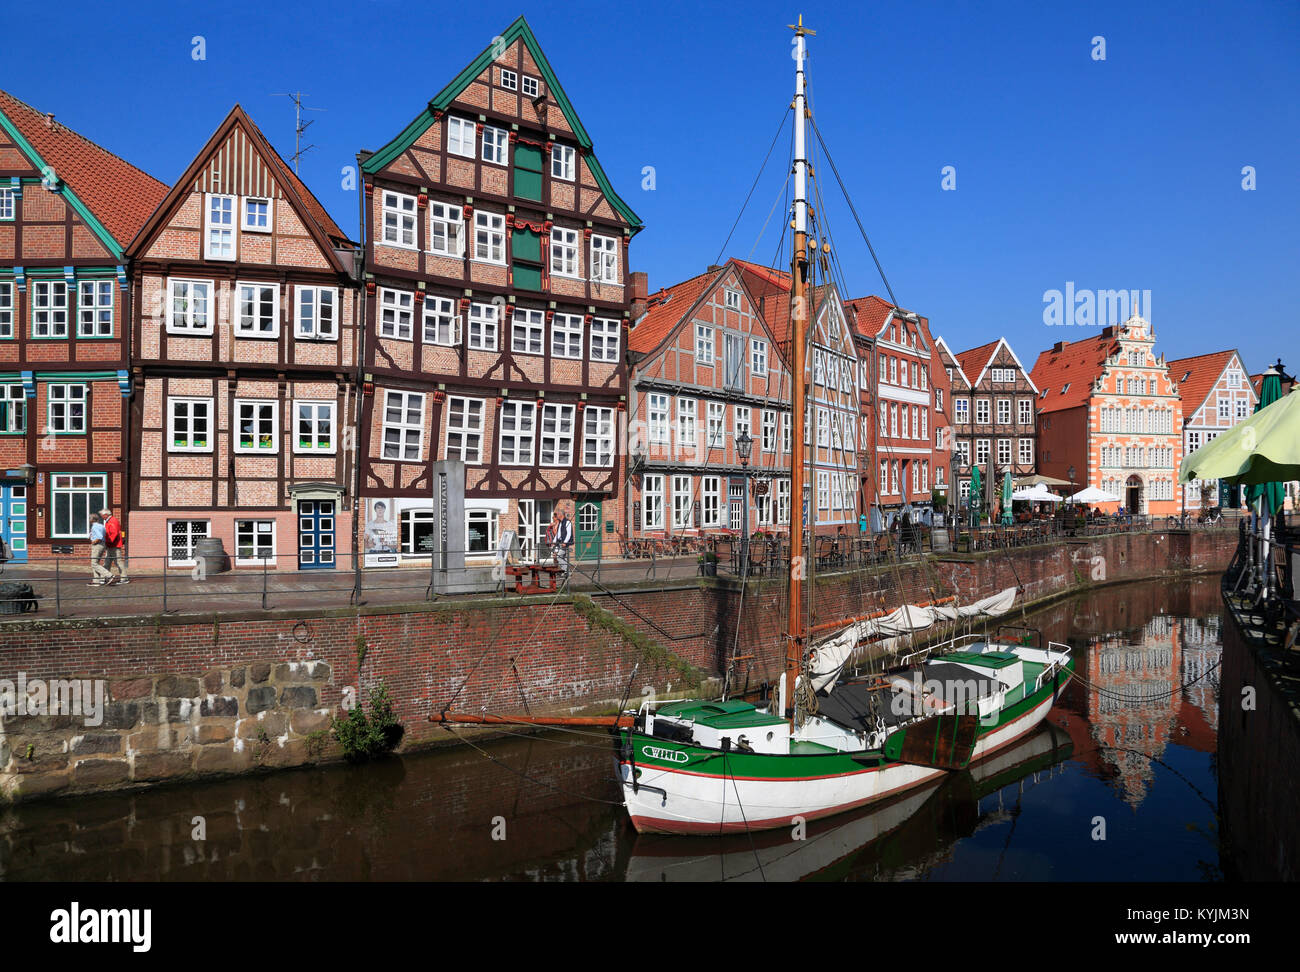 Ewer WILLI  in  the historic harbor of Stade, Altes Land, Lower Saxony, Germany Stock Photo